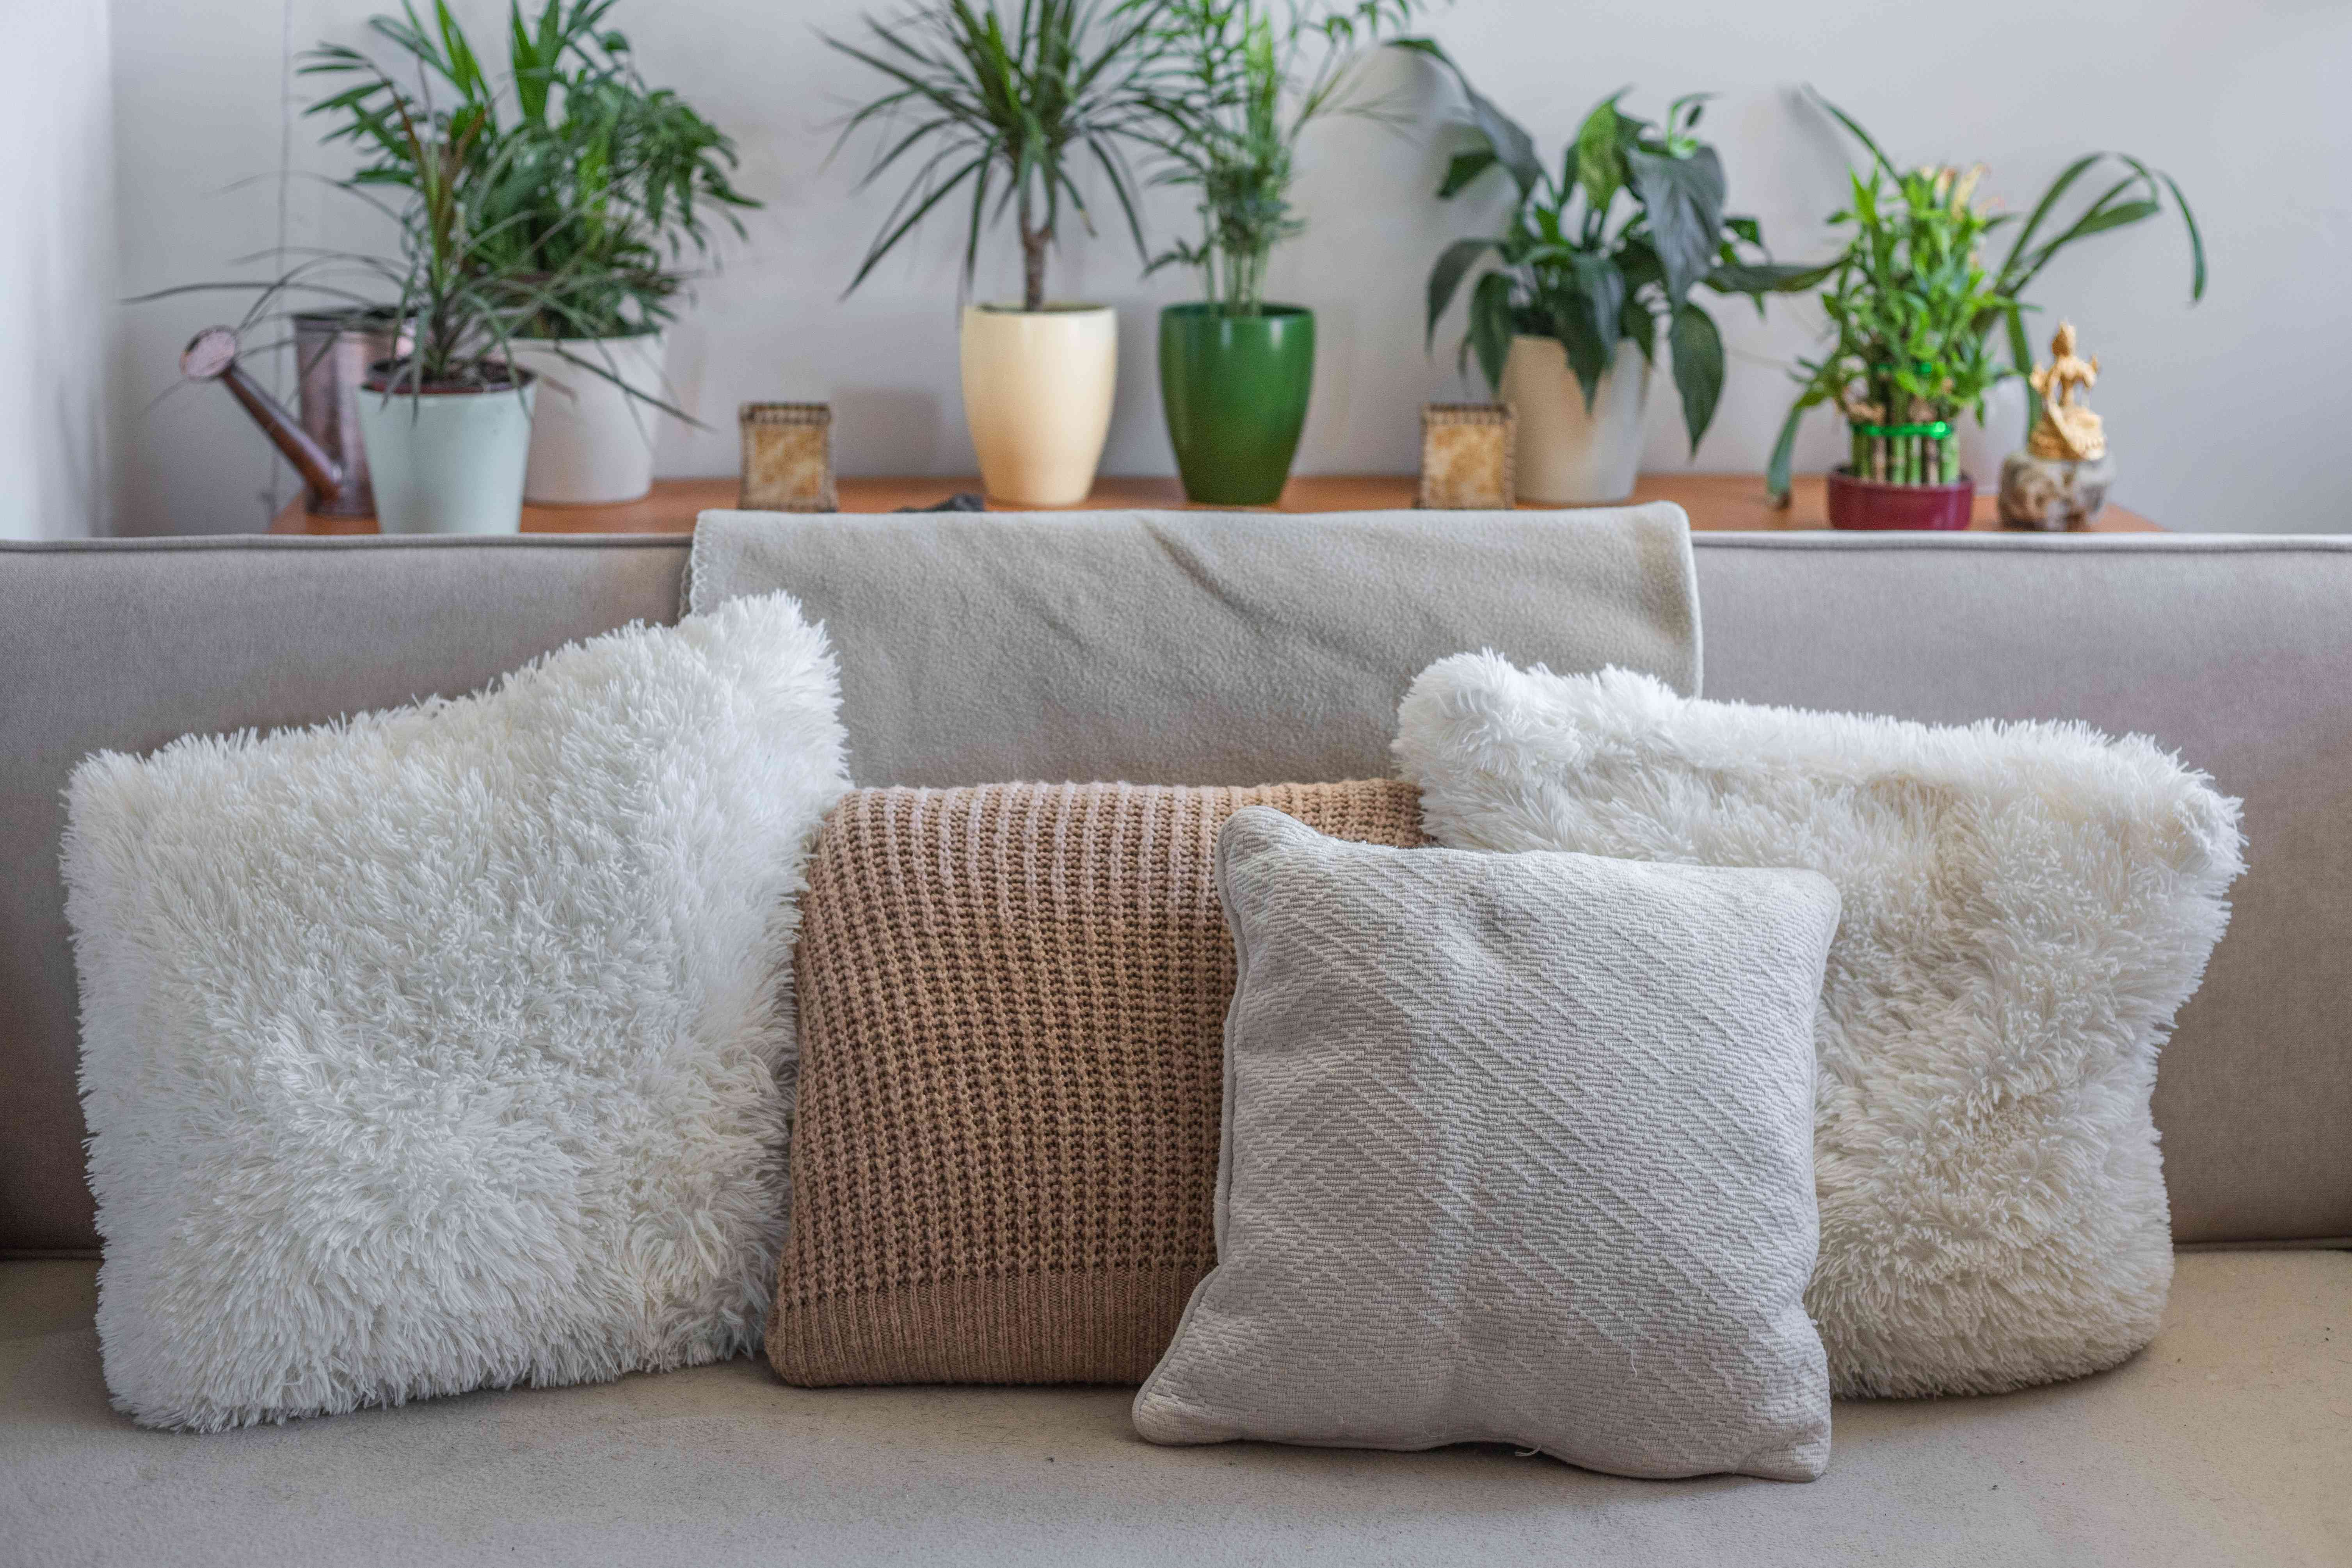 repurposed chunky sweaters turned into pillowcases arranged on couch with plants in background